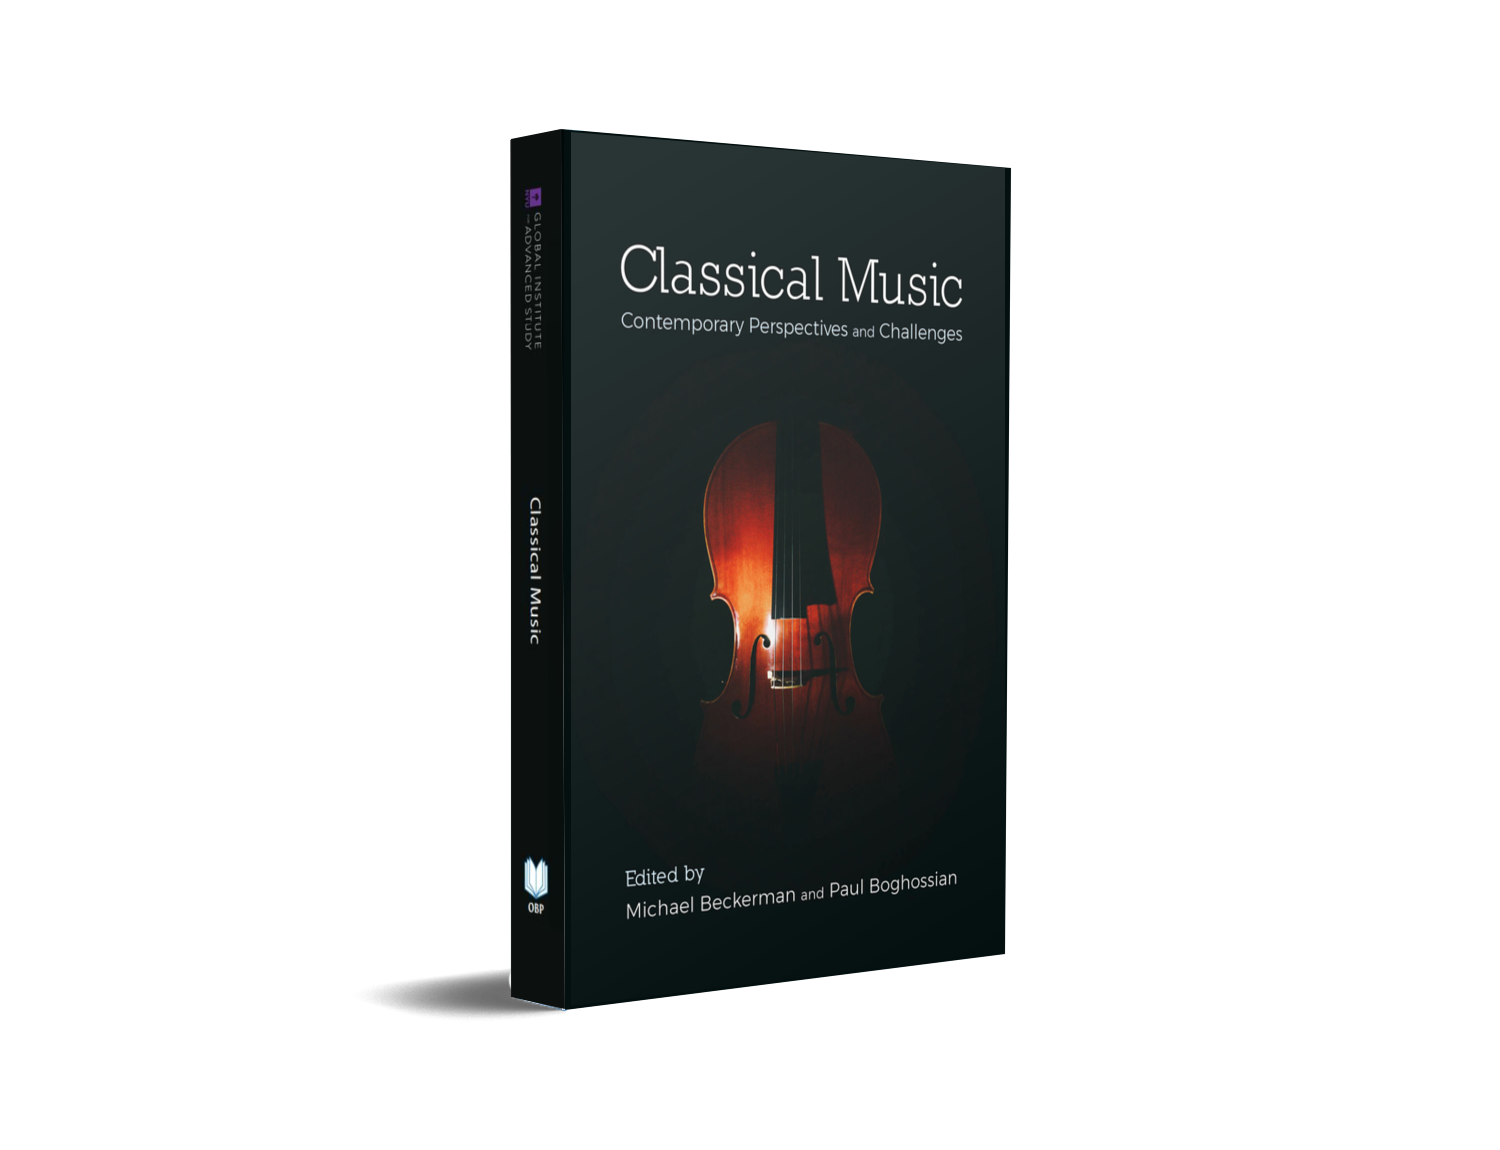 Classical Music: Contemporary Perspectives and Challenges